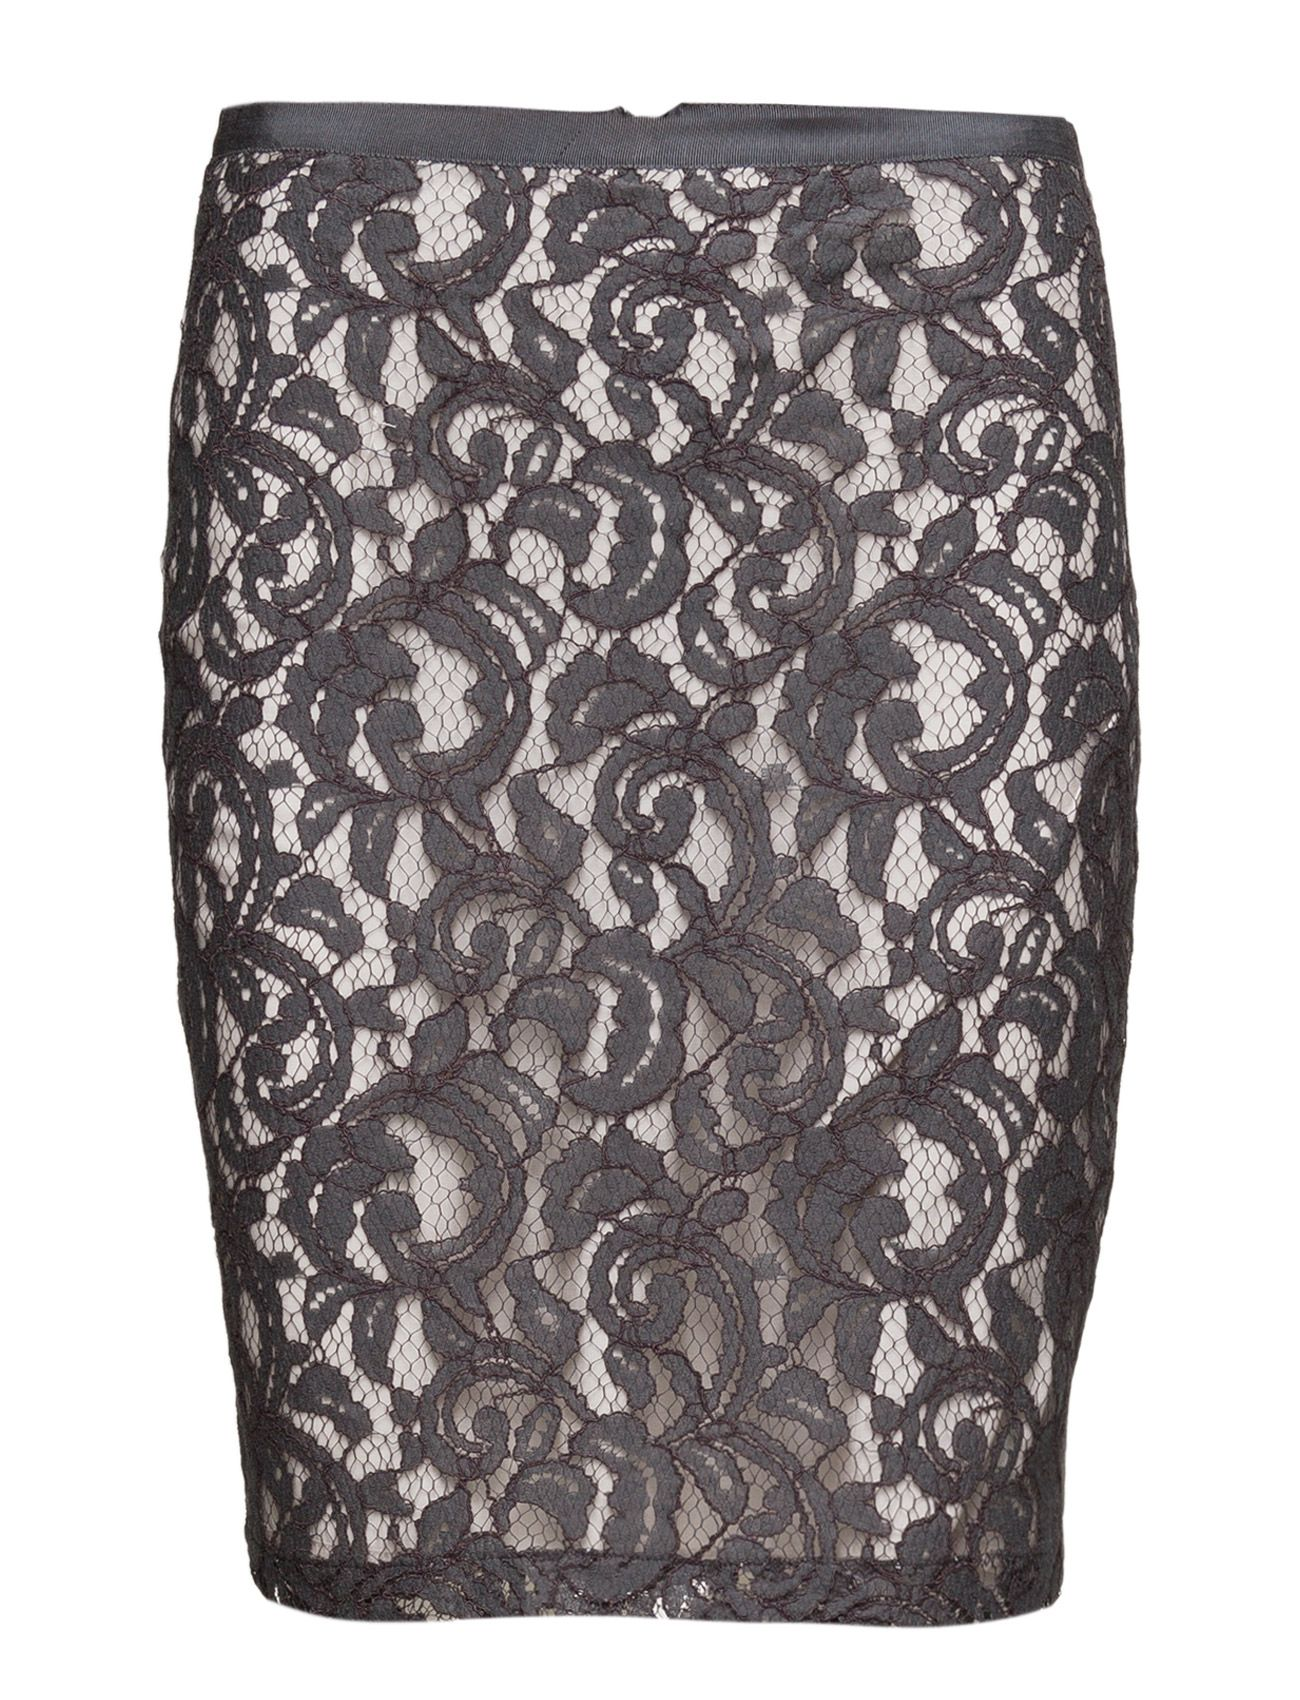 DAY - Day Weave Concealed back zip closure Inner lining Lace Elegant Romantic Sophisticated All-over lace crocheted embroidery